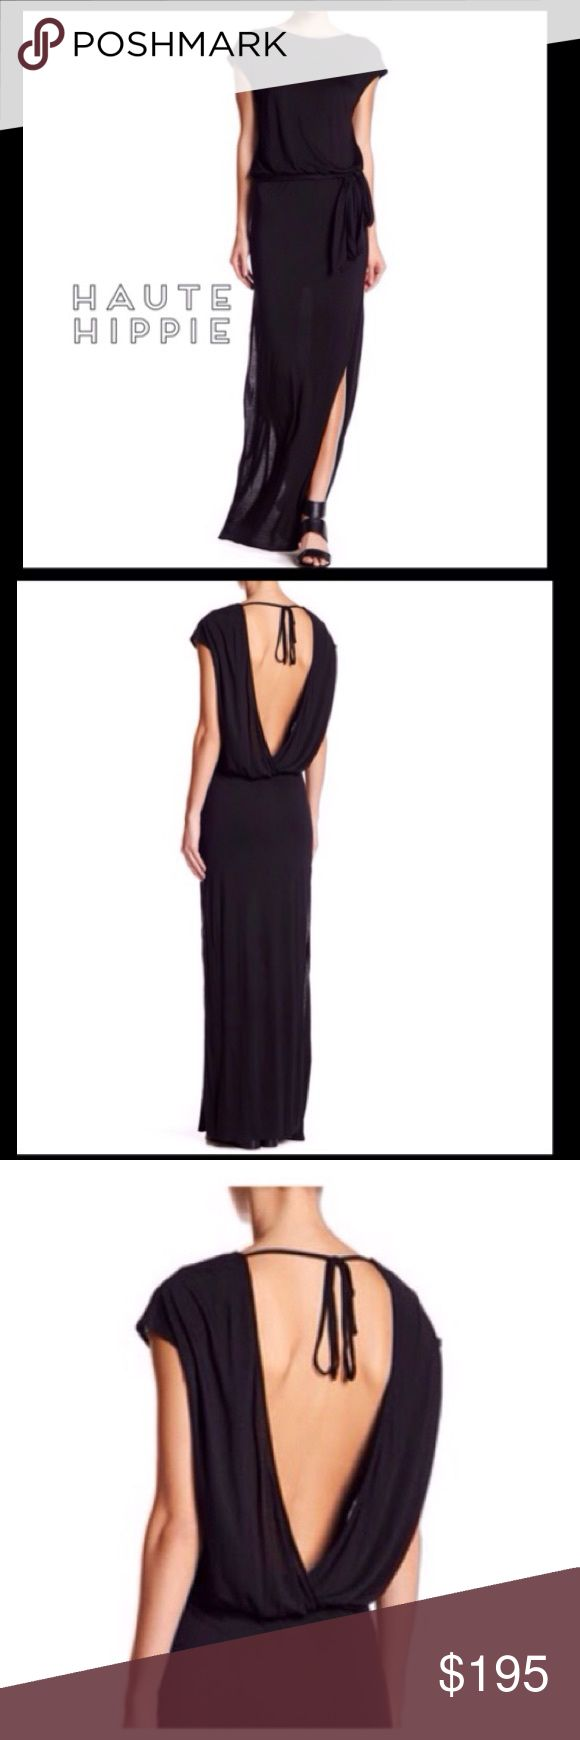 """Haute Hippie Back in Black Dress Date night? show off some skin in this elegantly draped dress. Boatneck, short sleeve, open draped back w/ tie closure. Detachable waist tie, knit construction, side vents. Approx. 68"""" long. 100% modal. Haute Hippie Dresses Backless"""